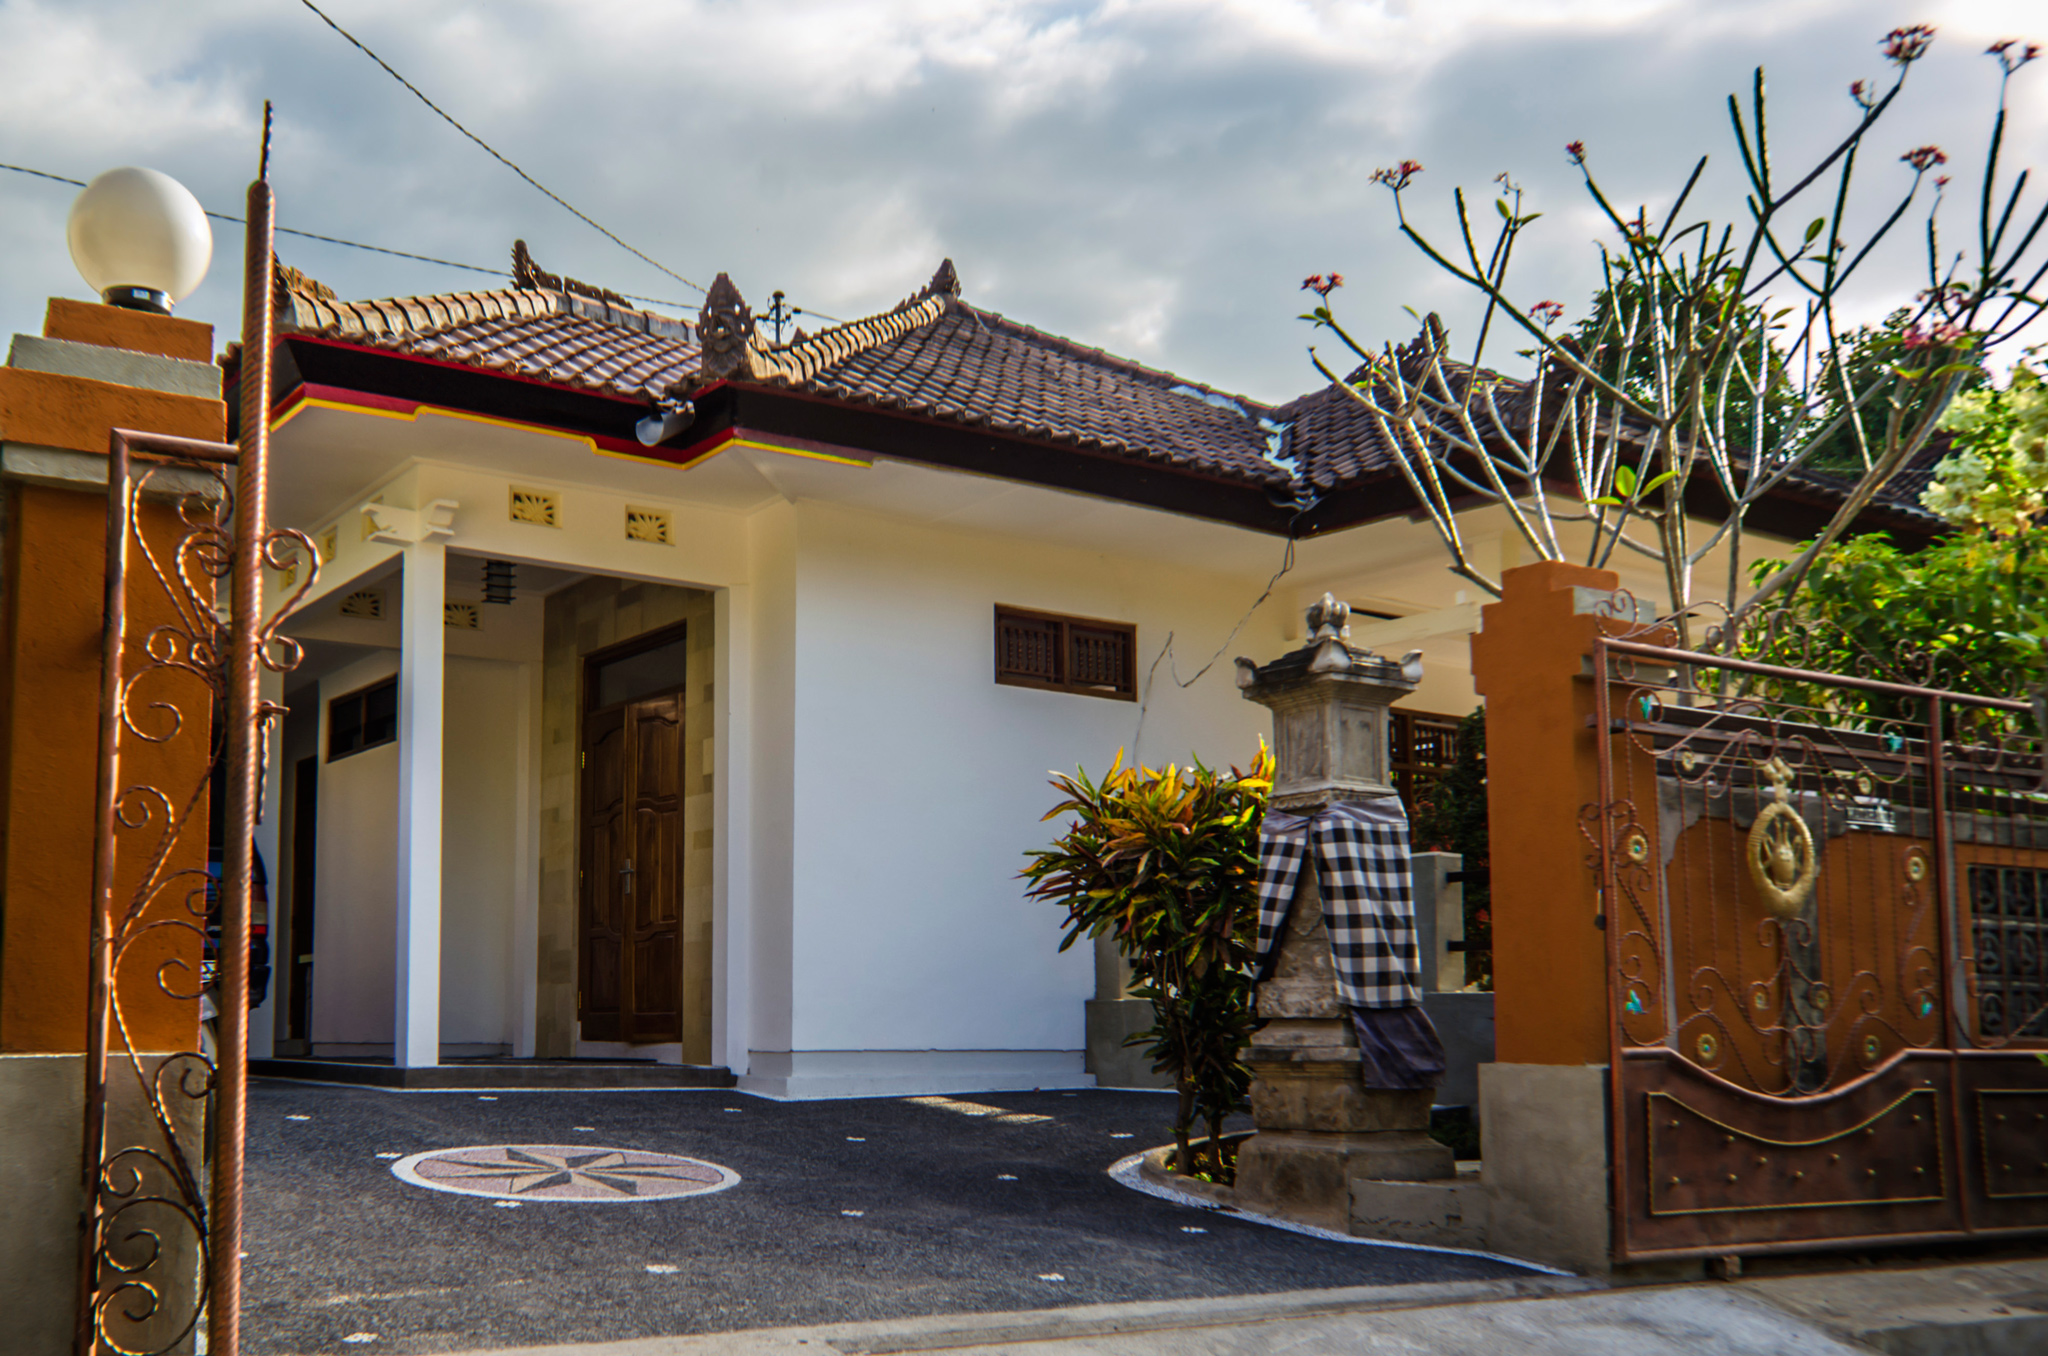 Ima Guest house offers you a very comfortable stay at inexpensive price. In our recently renovated Villas you will also stay in a very quiet residential area surrounded by mostly traditional styled Balinese houses. It's location is in Central Lovina Kalibukbuk ( often referred as Central Lovina).